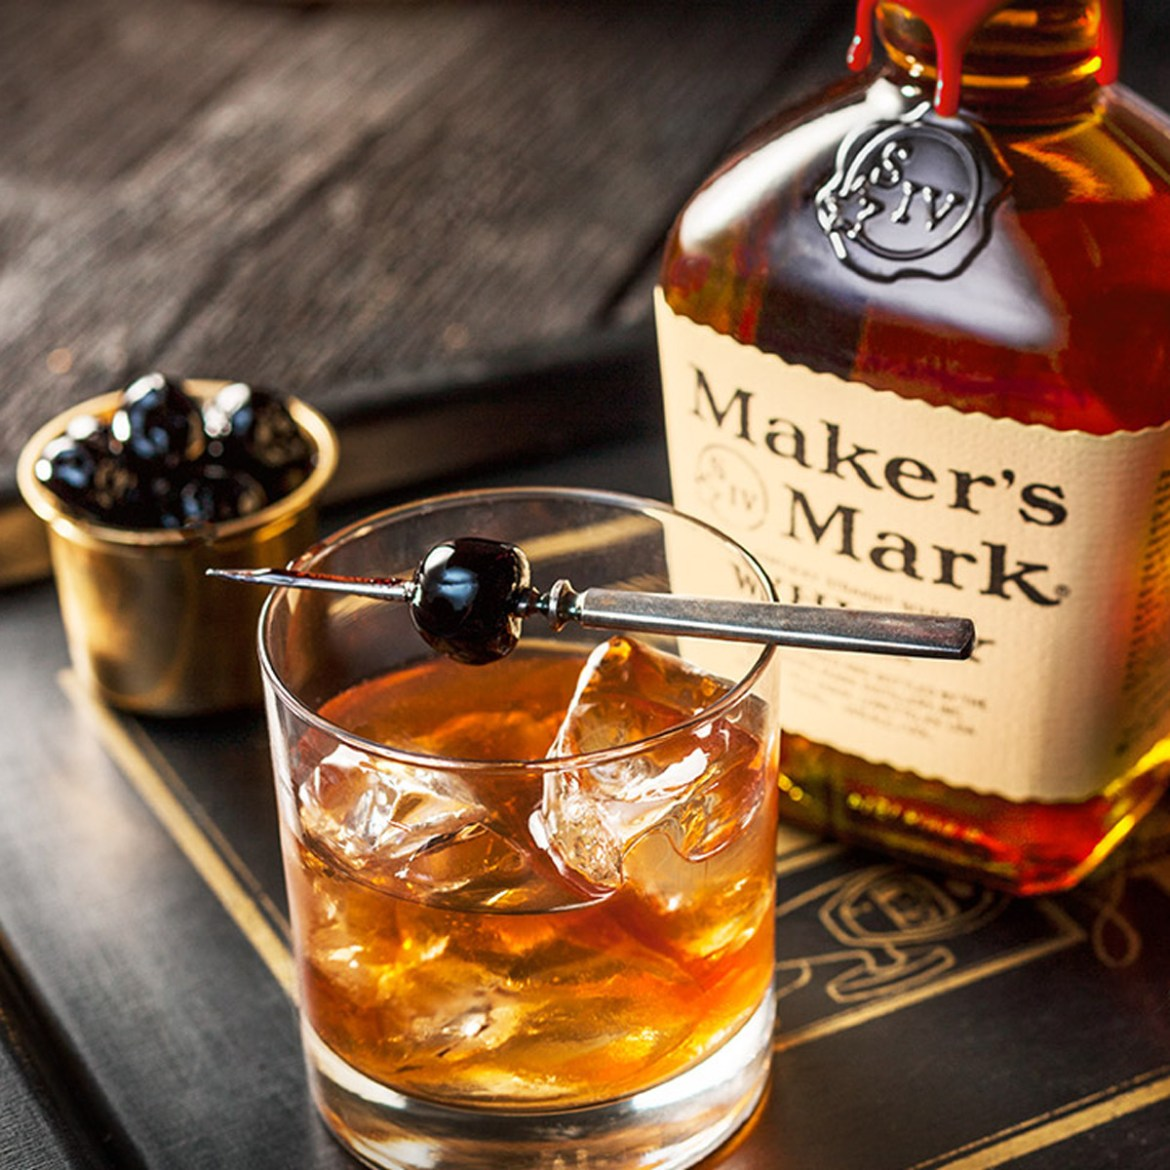 Maker's Mark bottle and glass